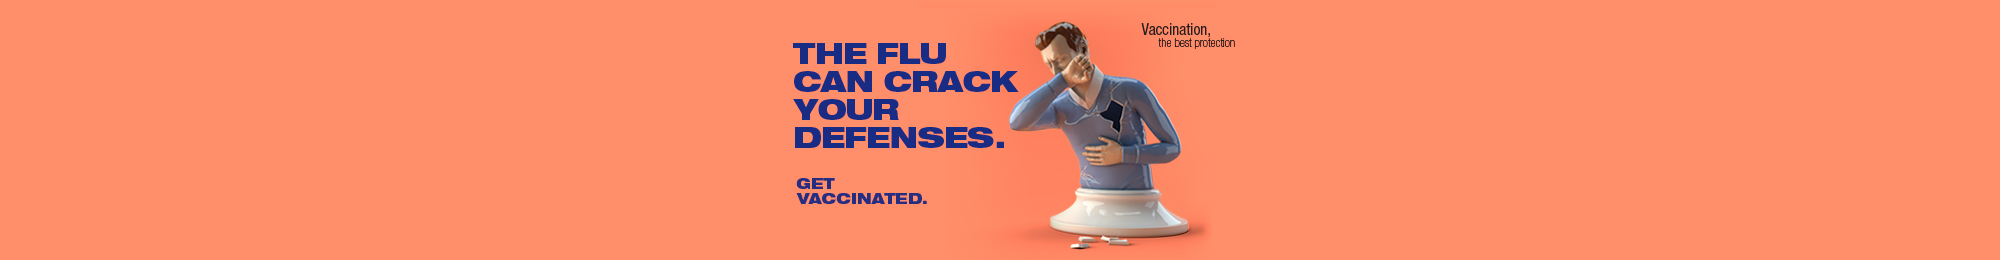 The flu can crack your defenses. Get vaccinated. Vaccination, the best protection.